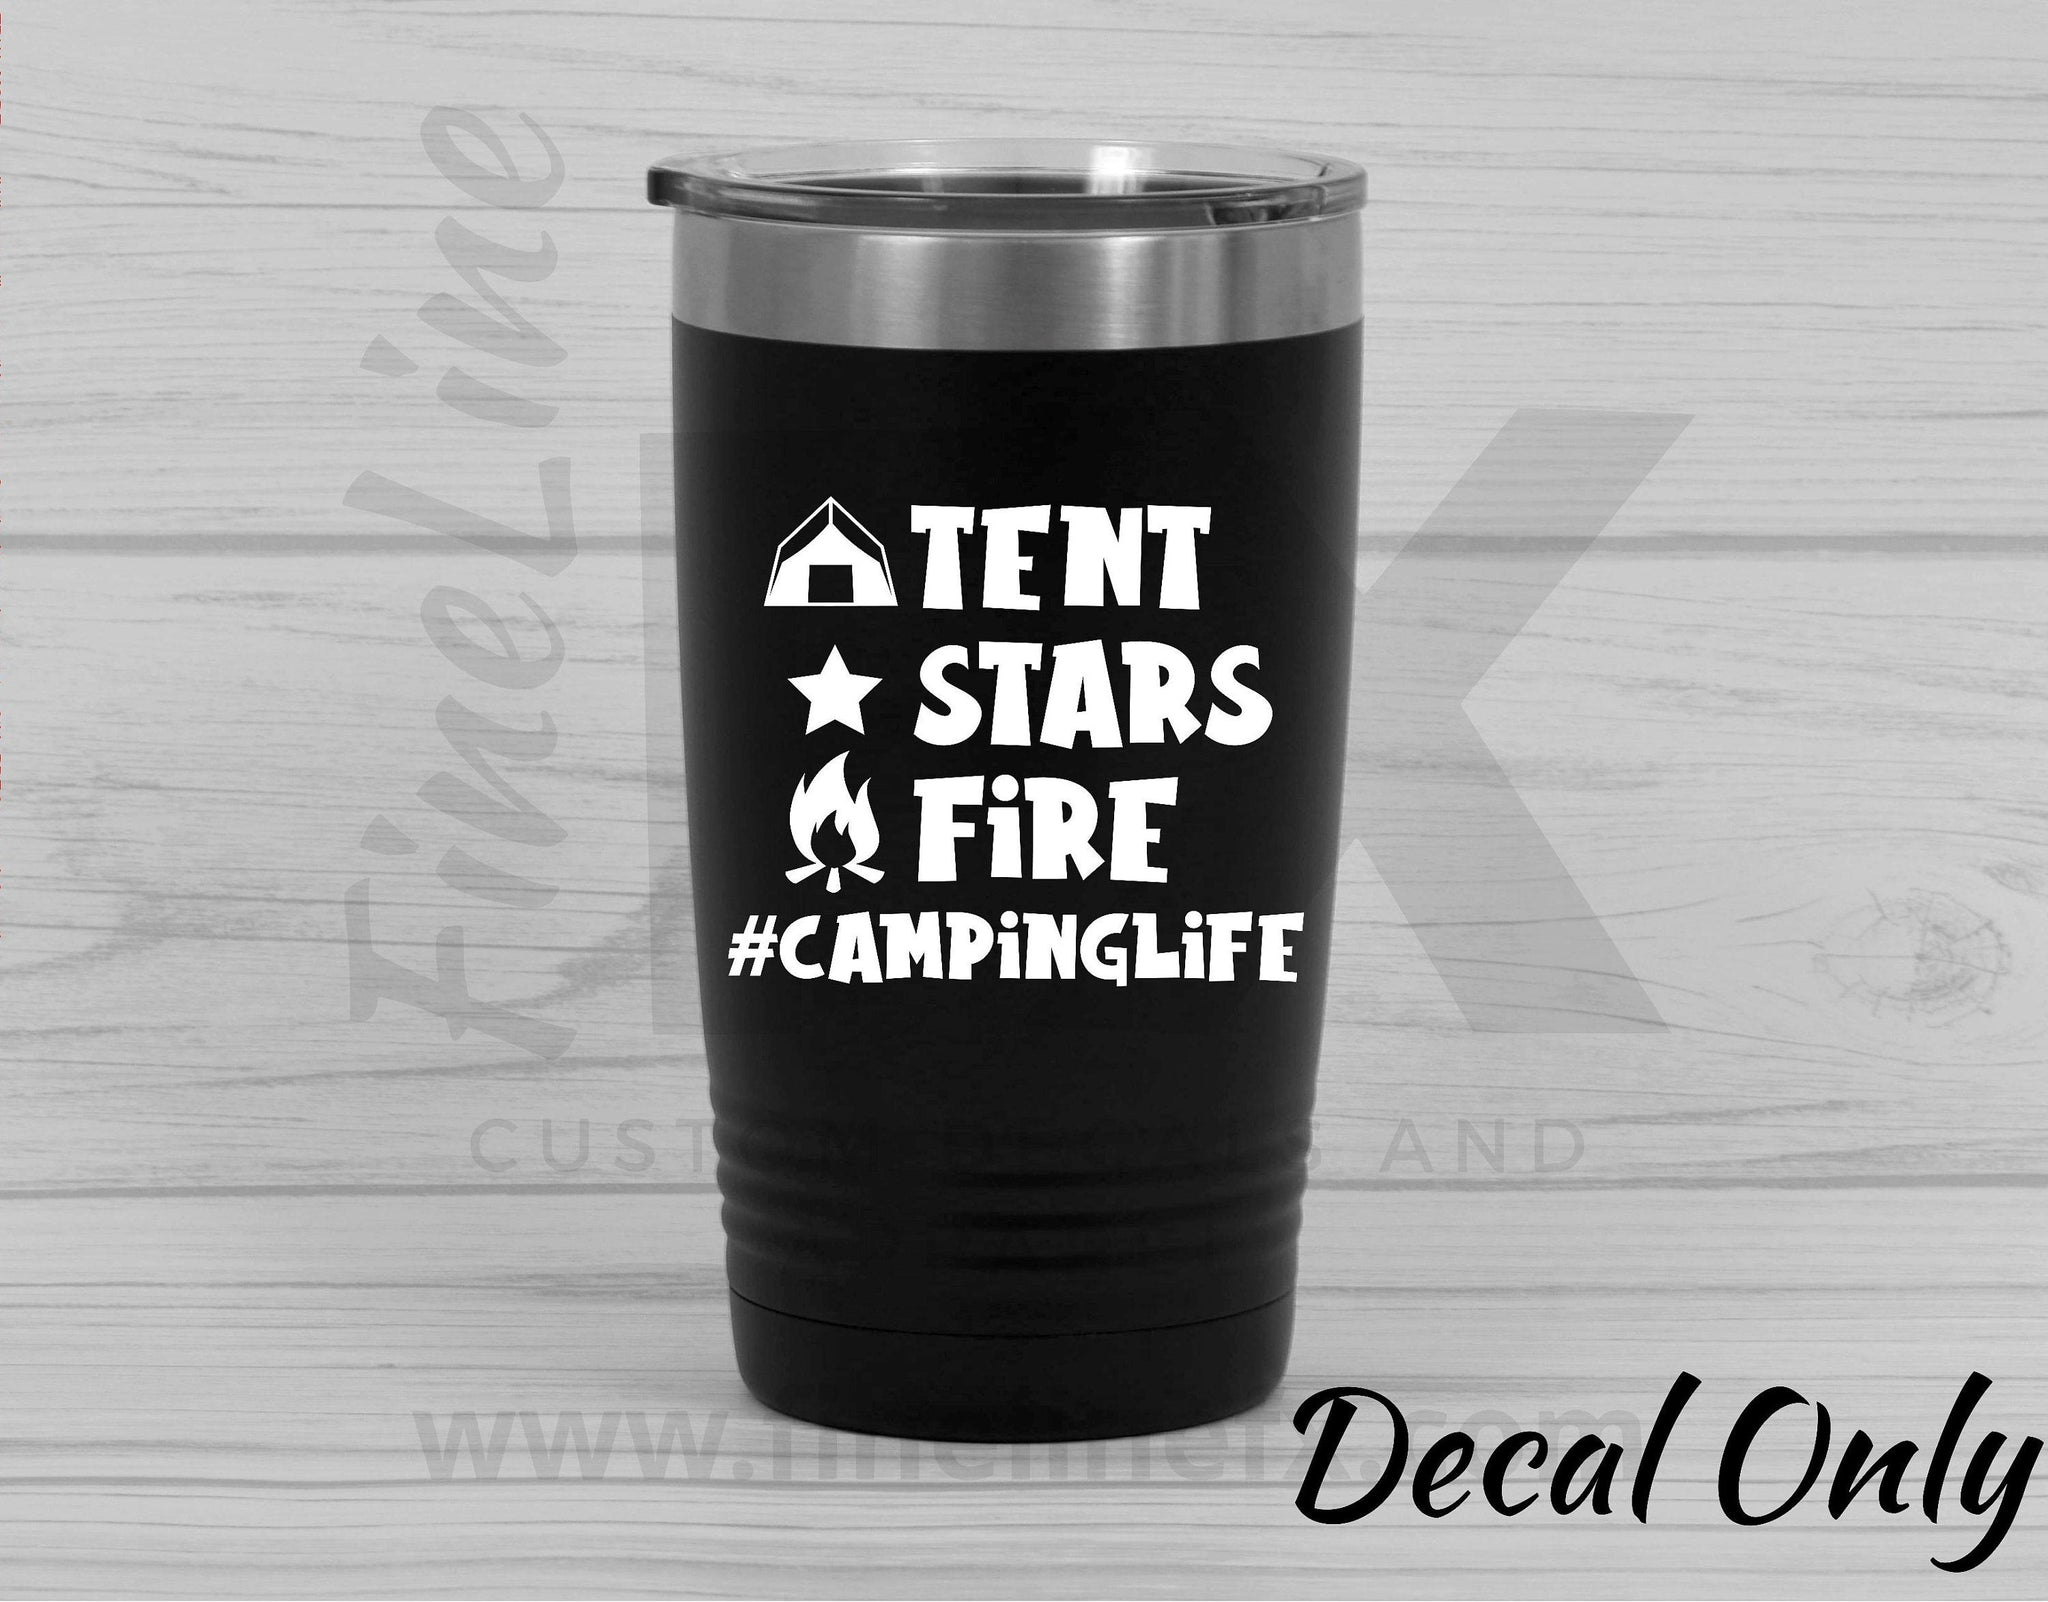 Tent Stars Fire - Camping Life Vinyl Decal Sticker